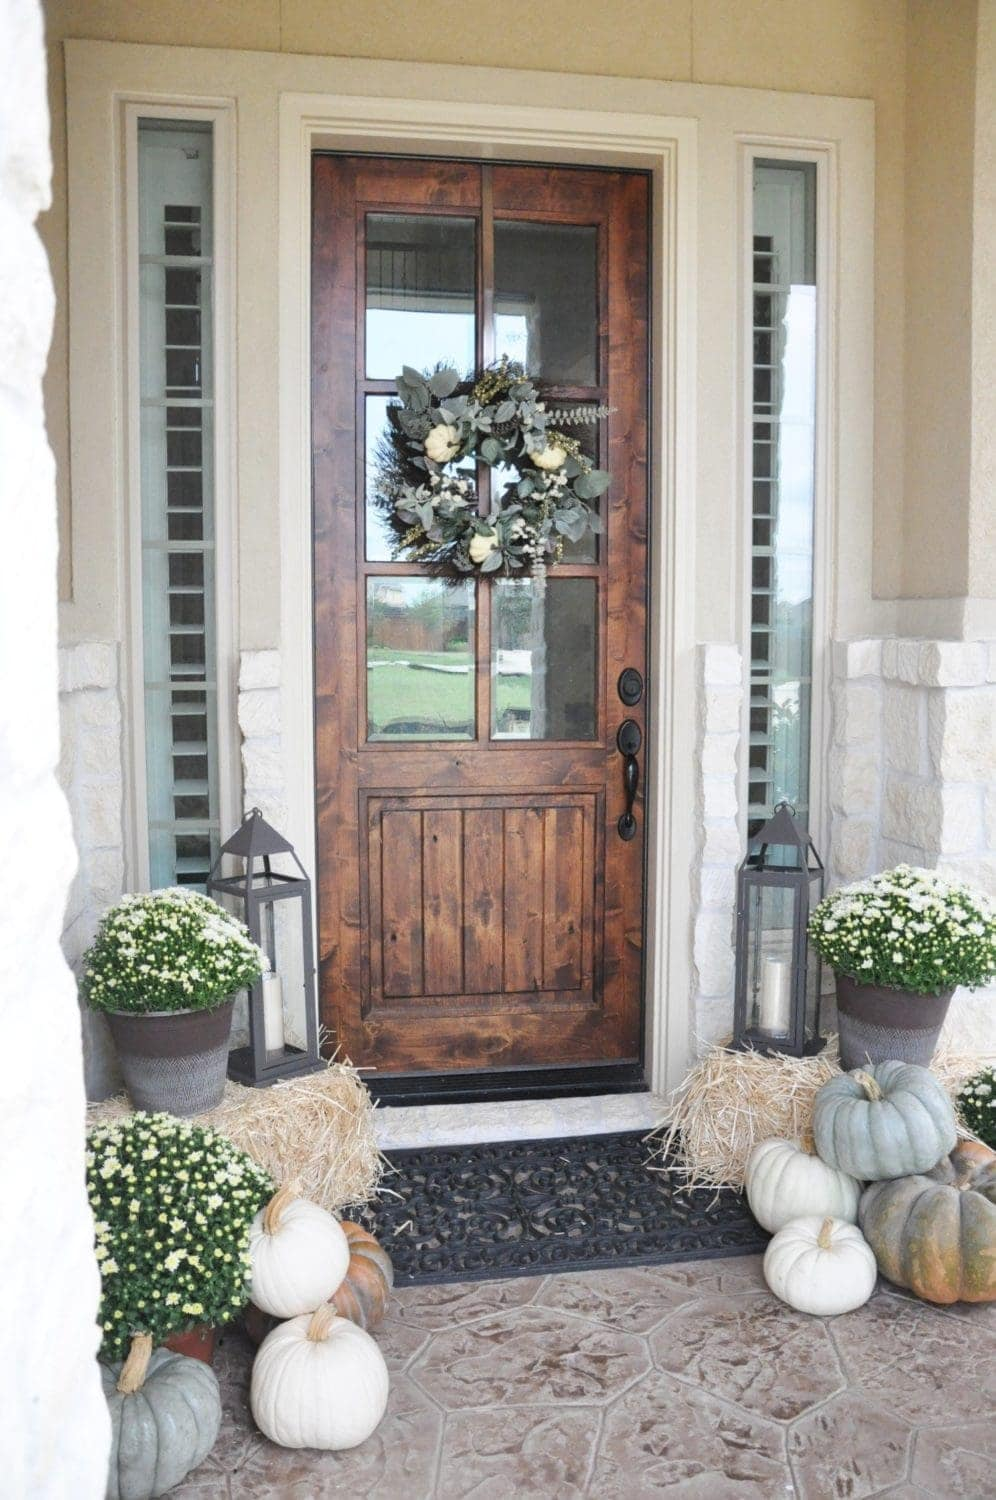 Fall front porch ideas using hay bales, lanterns and neutral colored pumpkins